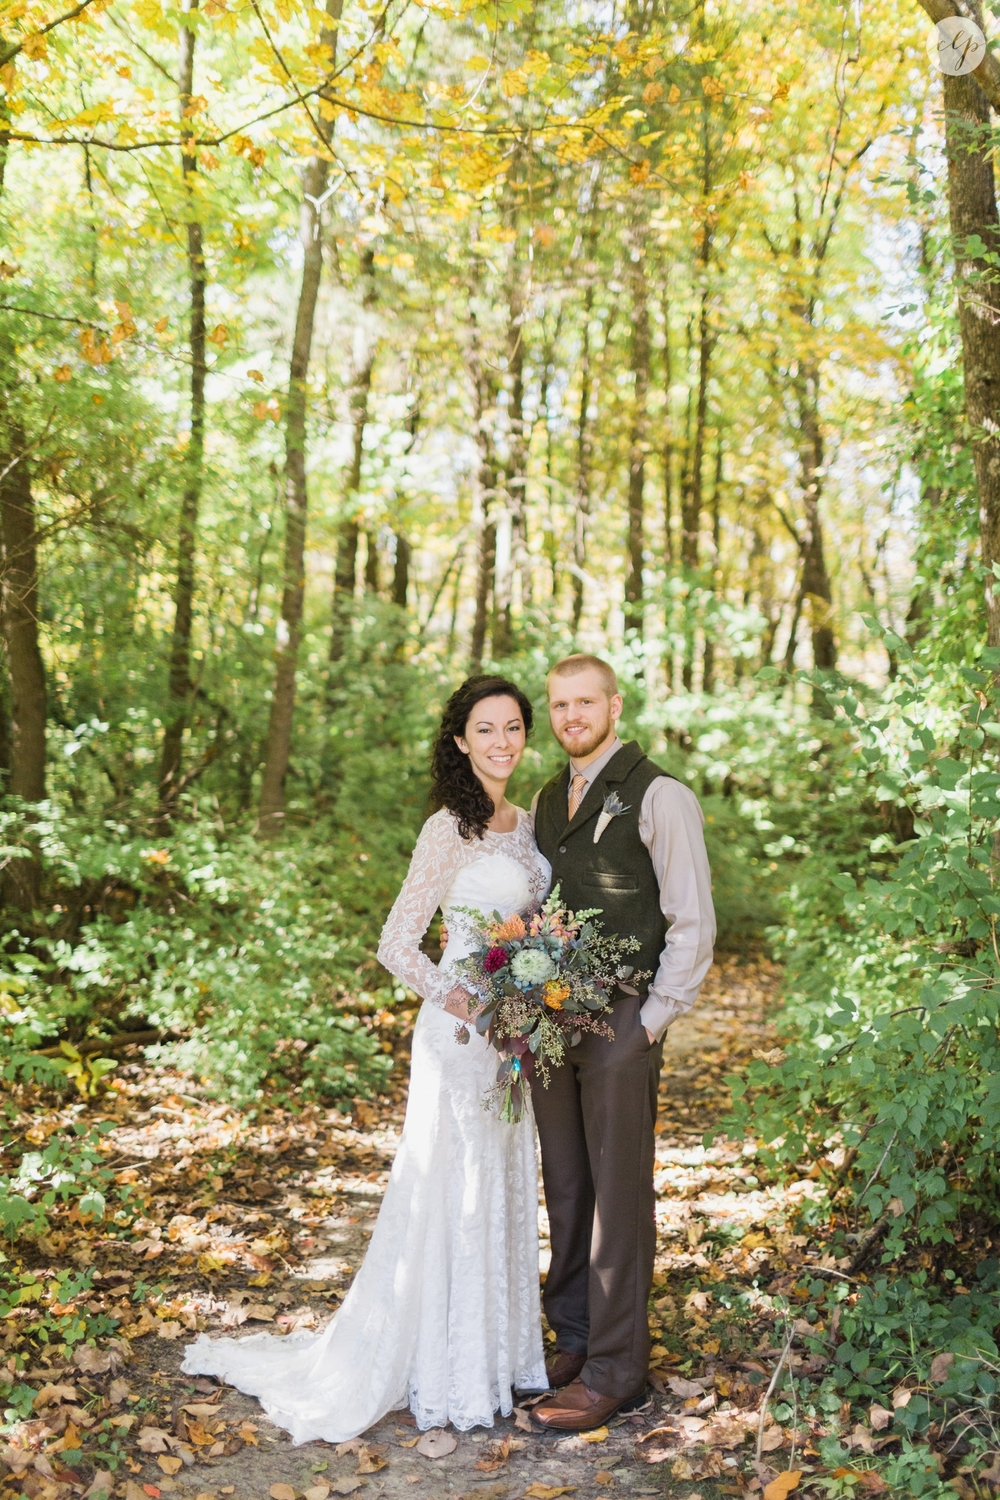 Outdoor-Wedding-in-the-Woods-Photography_4233.jpg